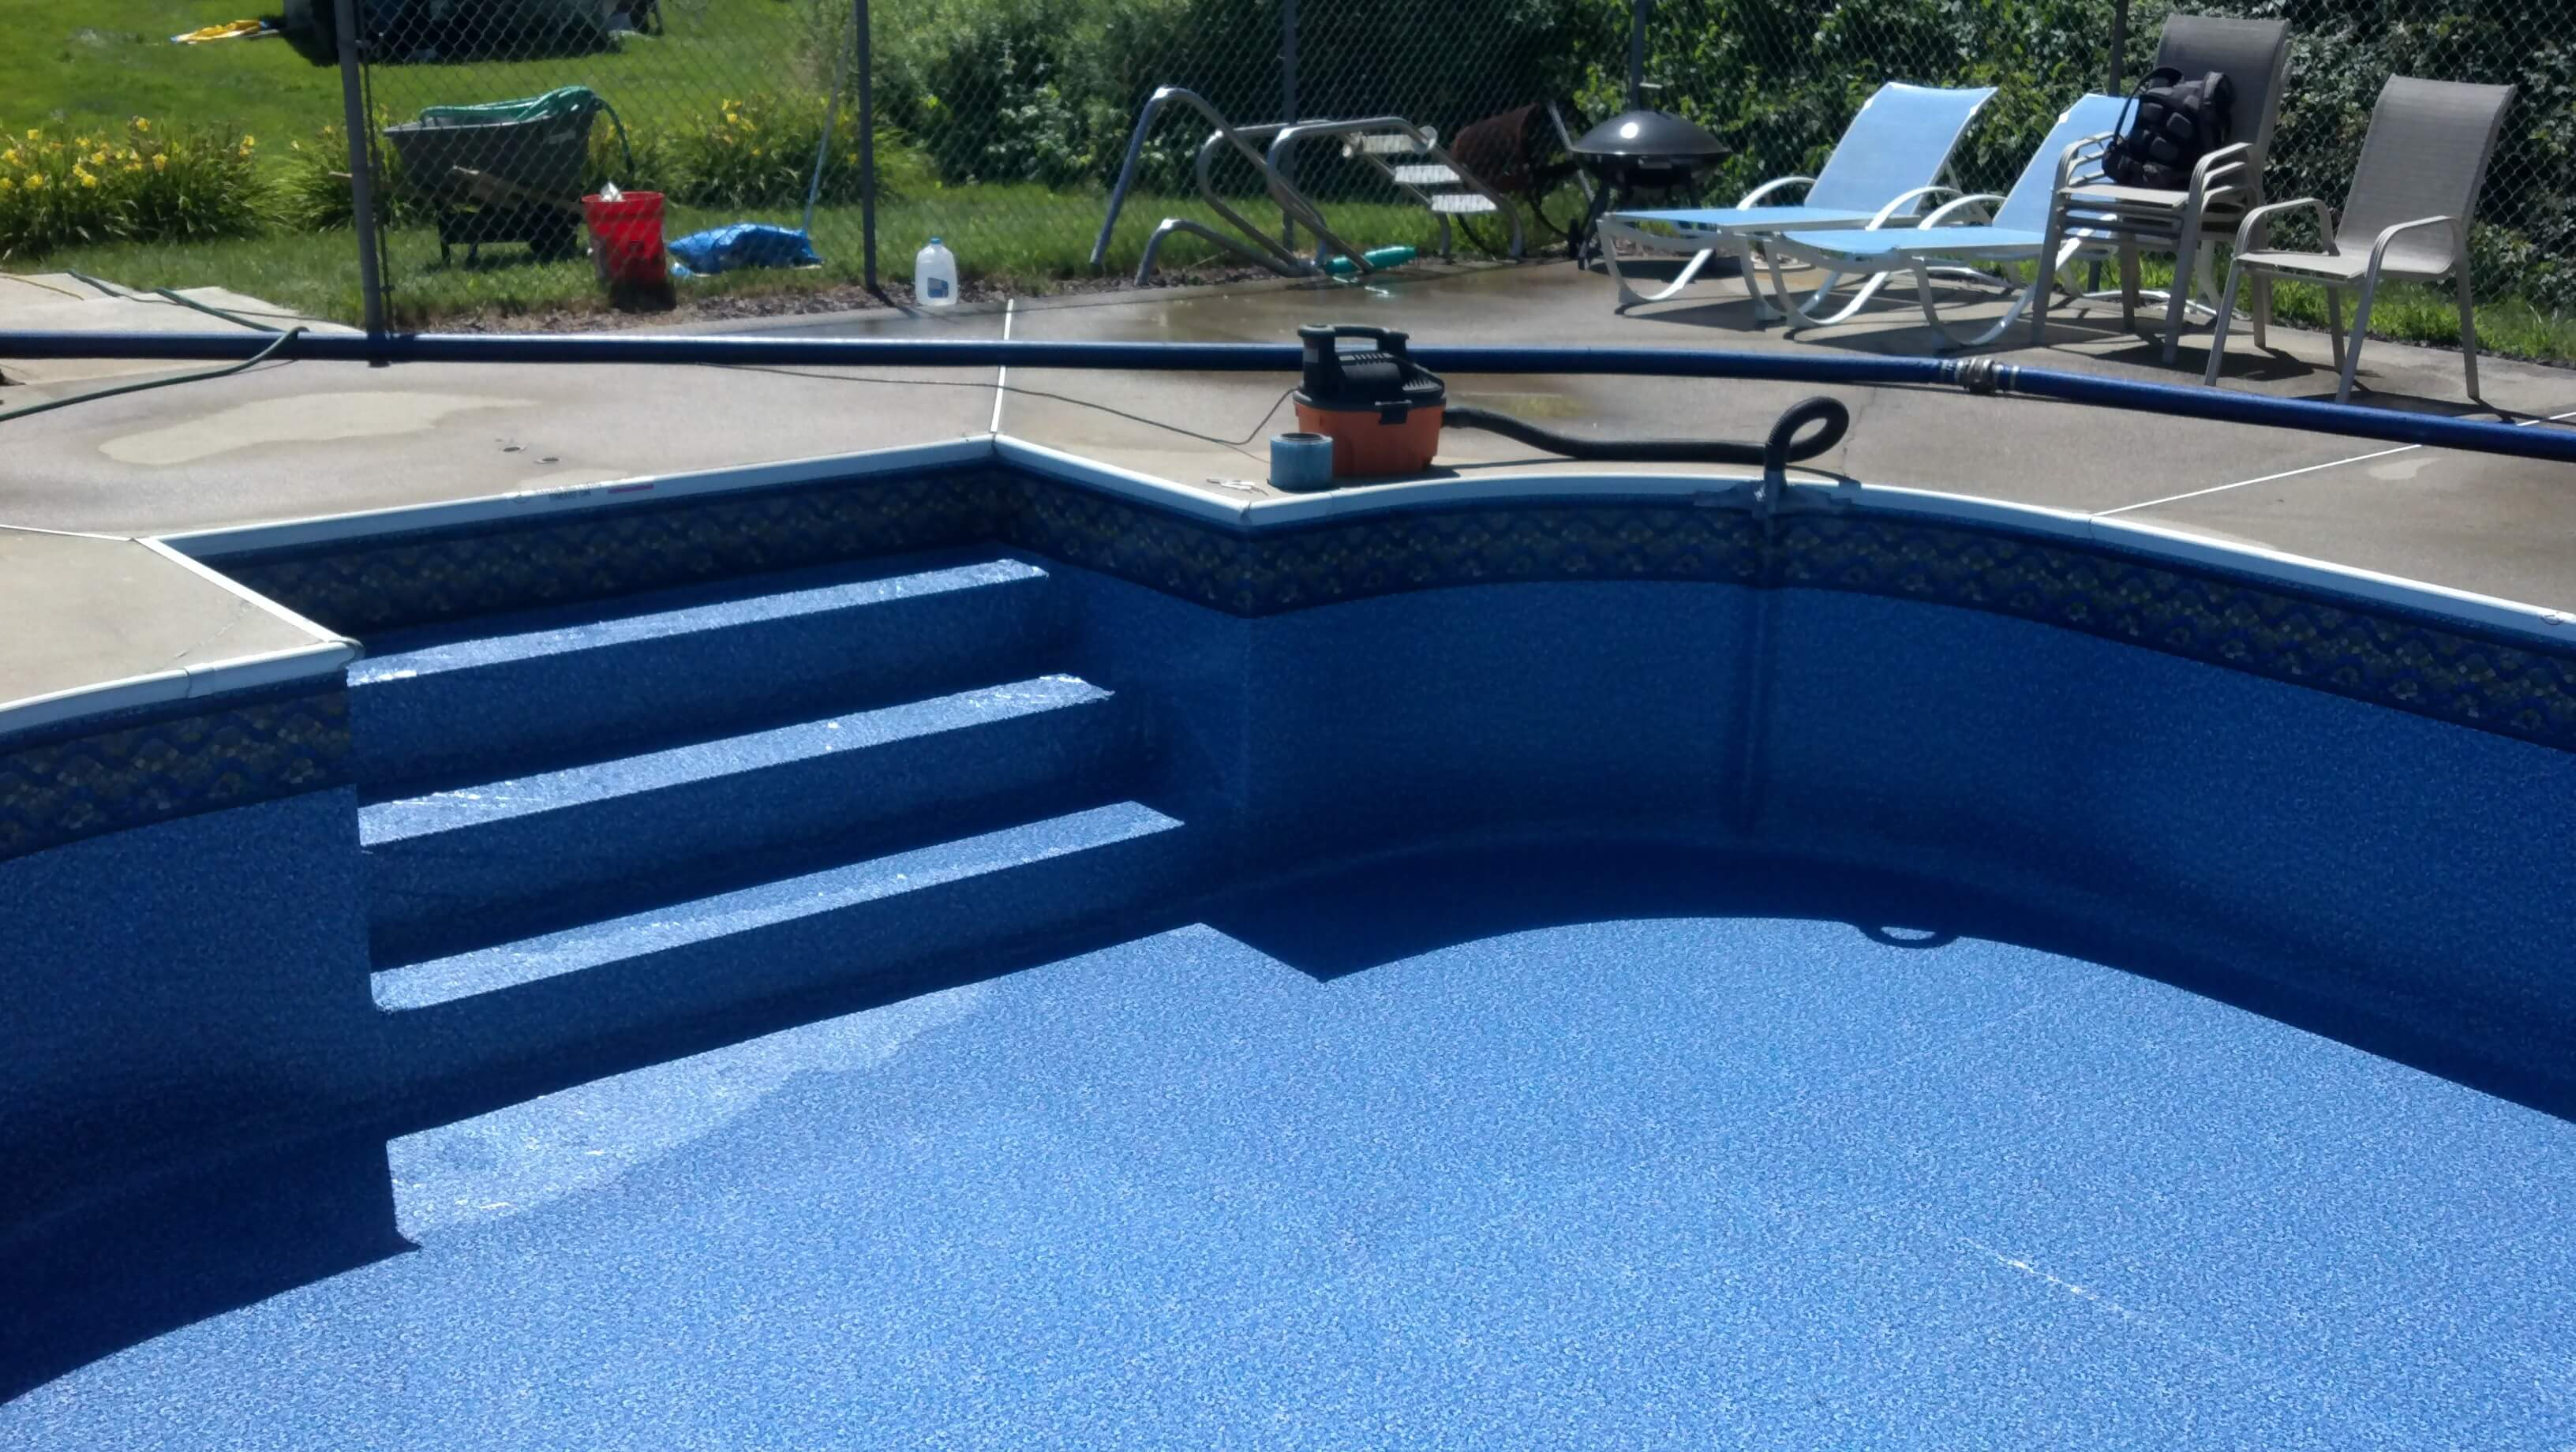 Inground Pool Liner Cost 2018 Prices For A Good Pool Liner Labor